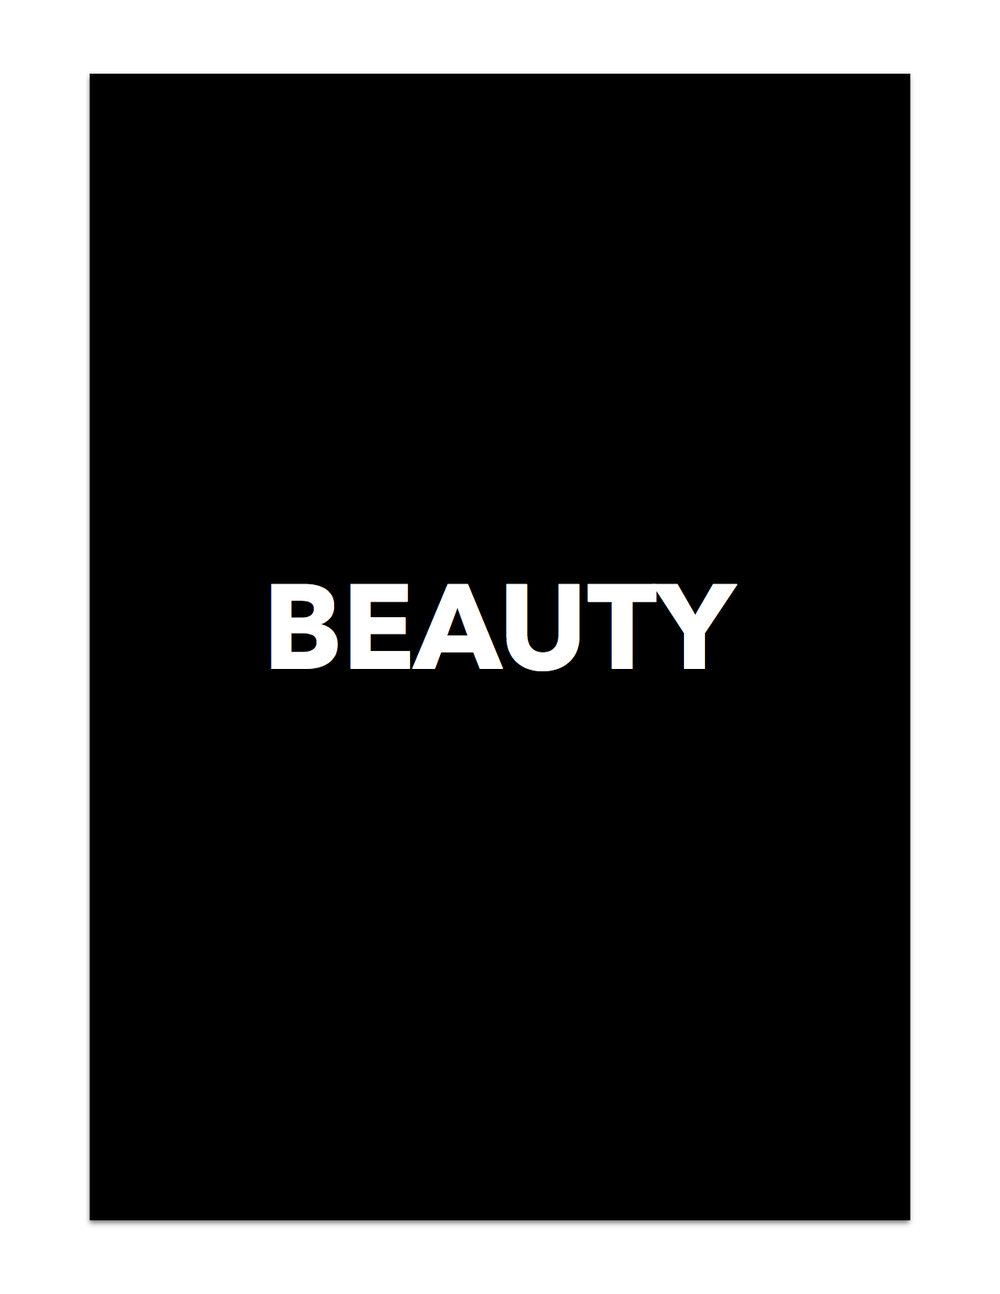 Beauty cover page.jpg